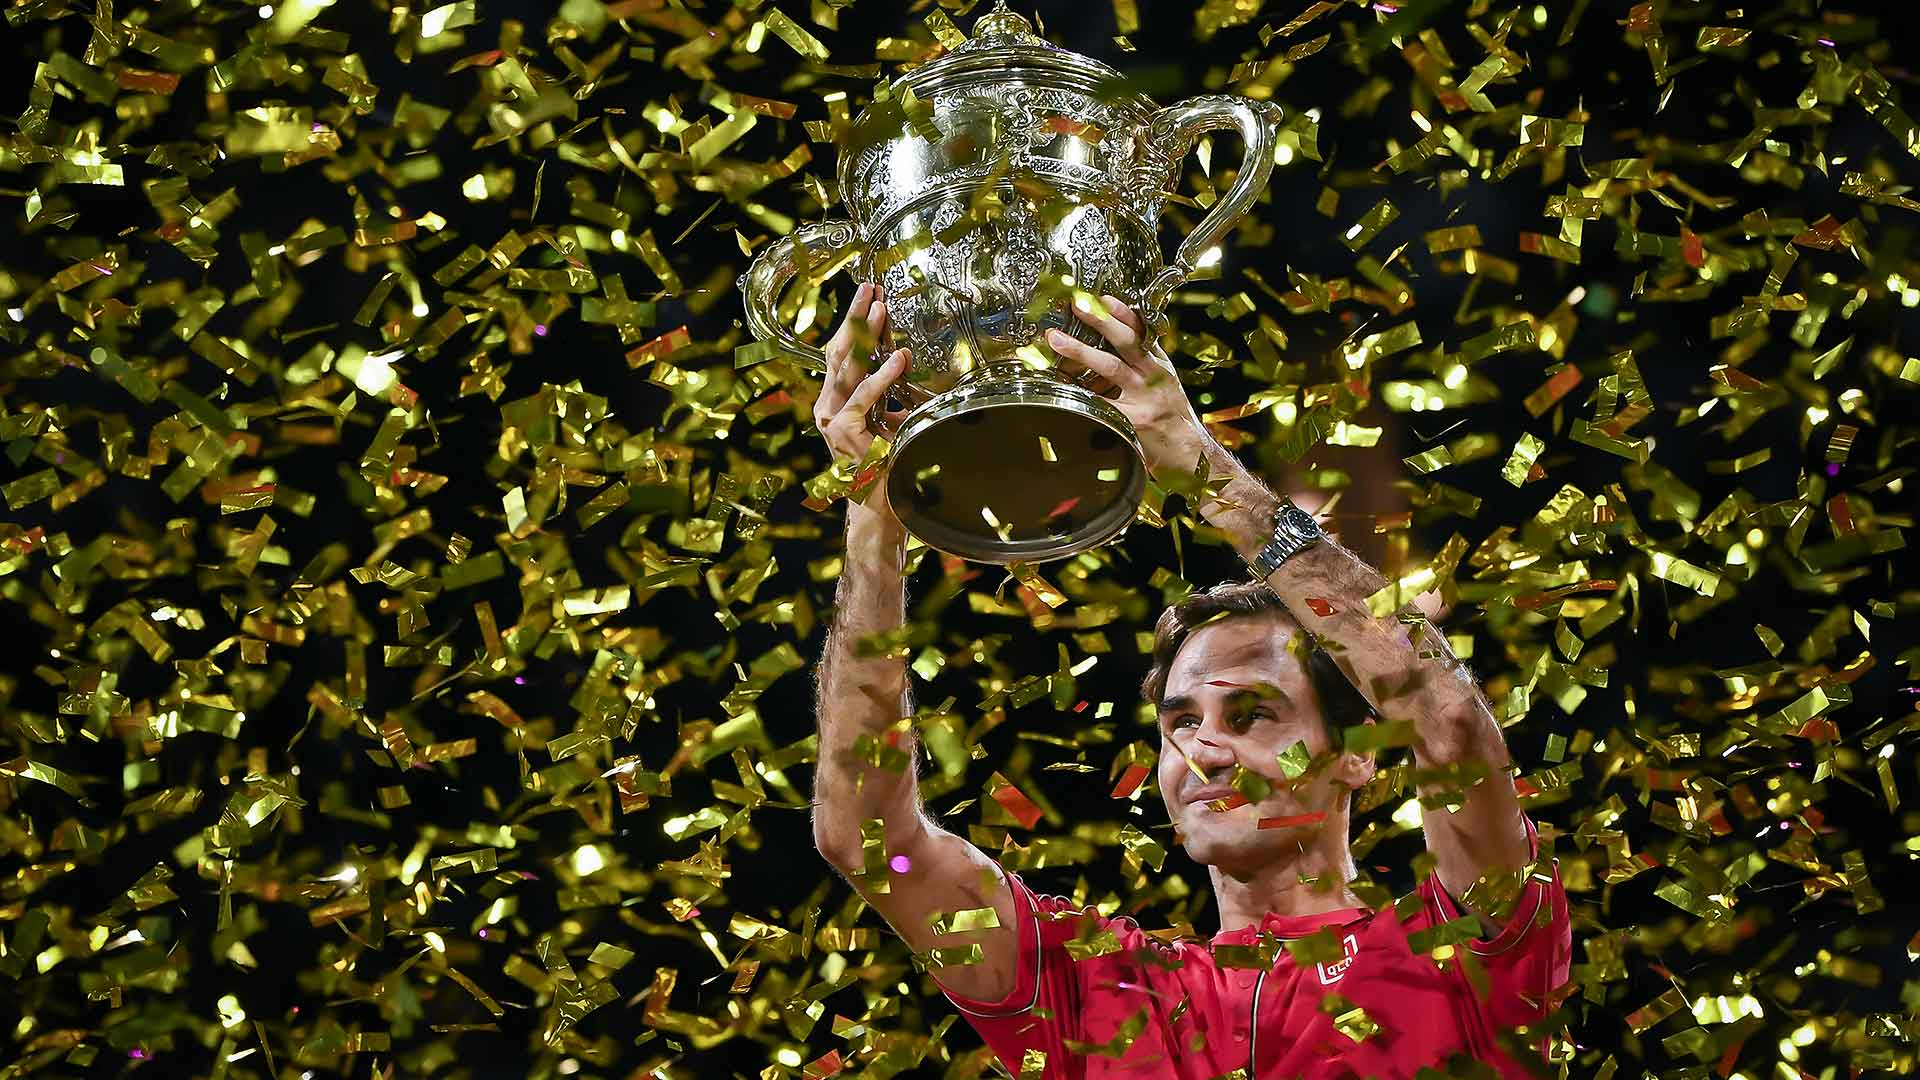 Roger Federer celebrates winning his 10th Basel title